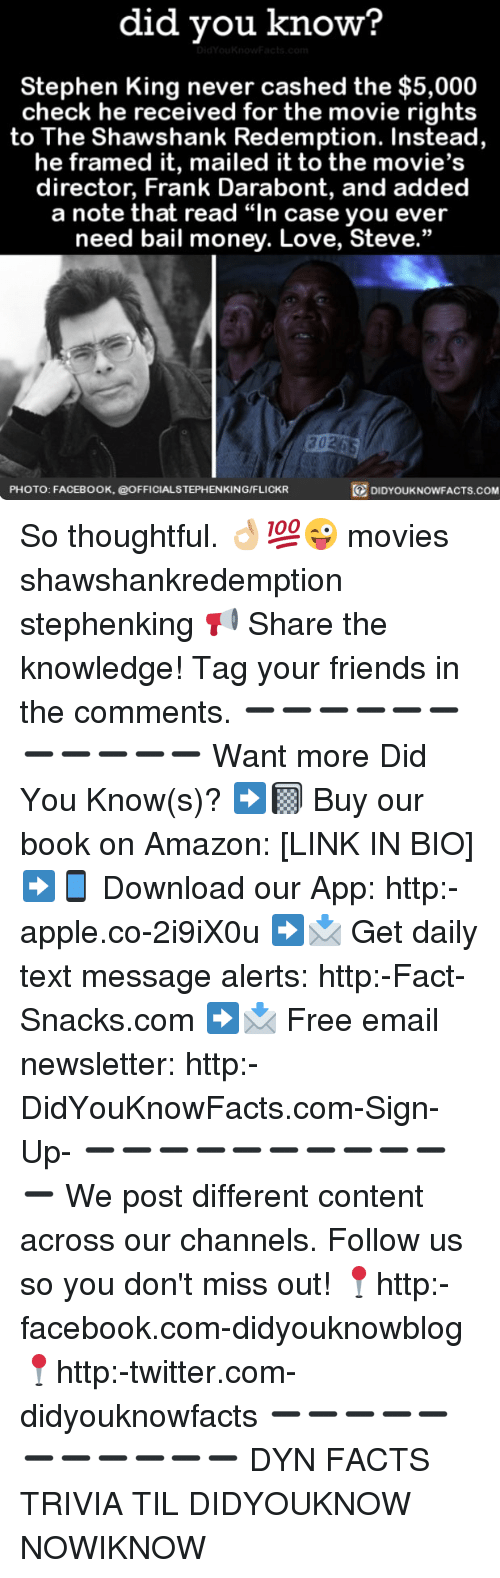 """Amazon, Apple, and Facebook: did you know?  Stephen King never cashed the $5,000  check he received for the movie rights  to The Shawshank Redemption. Instead,  he framed it, mailed it to the movie  director, Frank Darabont, and added  a note that read """"In case you ever  need bail money. Love, Steve.""""  20265  DIDYOUKNOWFACTs.coM  PHOTO: FACEBOOK, @OFFICIALSTEPHENKING/FLICKR So thoughtful. 👌🏼💯😜 movies shawshankredemption stephenking 📢 Share the knowledge! Tag your friends in the comments. ➖➖➖➖➖➖➖➖➖➖➖ Want more Did You Know(s)? ➡📓 Buy our book on Amazon: [LINK IN BIO] ➡📱 Download our App: http:-apple.co-2i9iX0u ➡📩 Get daily text message alerts: http:-Fact-Snacks.com ➡📩 Free email newsletter: http:-DidYouKnowFacts.com-Sign-Up- ➖➖➖➖➖➖➖➖➖➖➖ We post different content across our channels. Follow us so you don't miss out! 📍http:-facebook.com-didyouknowblog 📍http:-twitter.com-didyouknowfacts ➖➖➖➖➖➖➖➖➖➖➖ DYN FACTS TRIVIA TIL DIDYOUKNOW NOWIKNOW"""